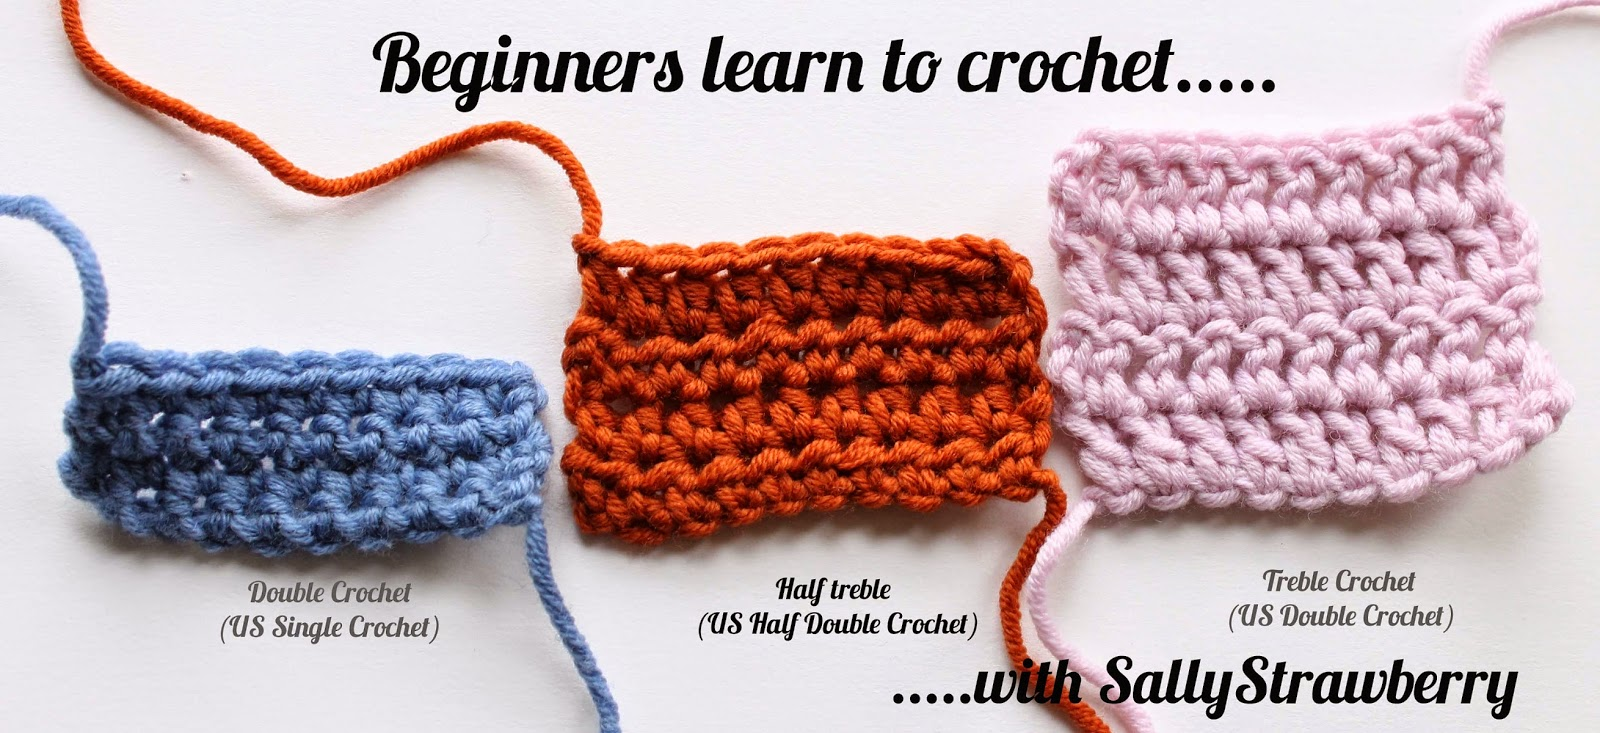 Crocheting For Beginners beginners learn to crochet: half-treble crochet avfovot